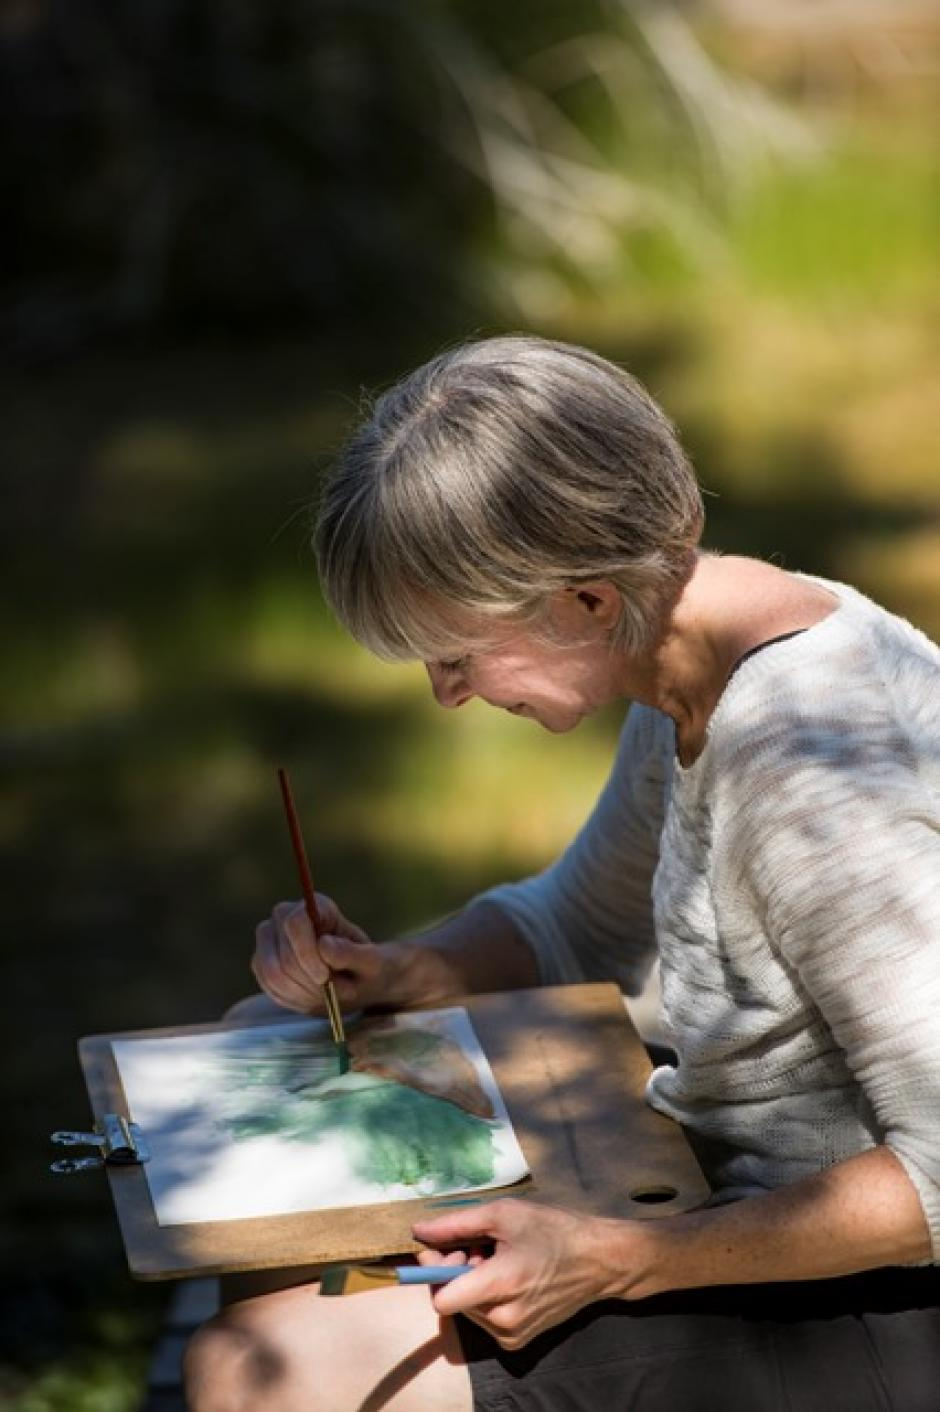 Drawn to Nature participant at the Cave and Basin. Photo by Don Lee, 2015.